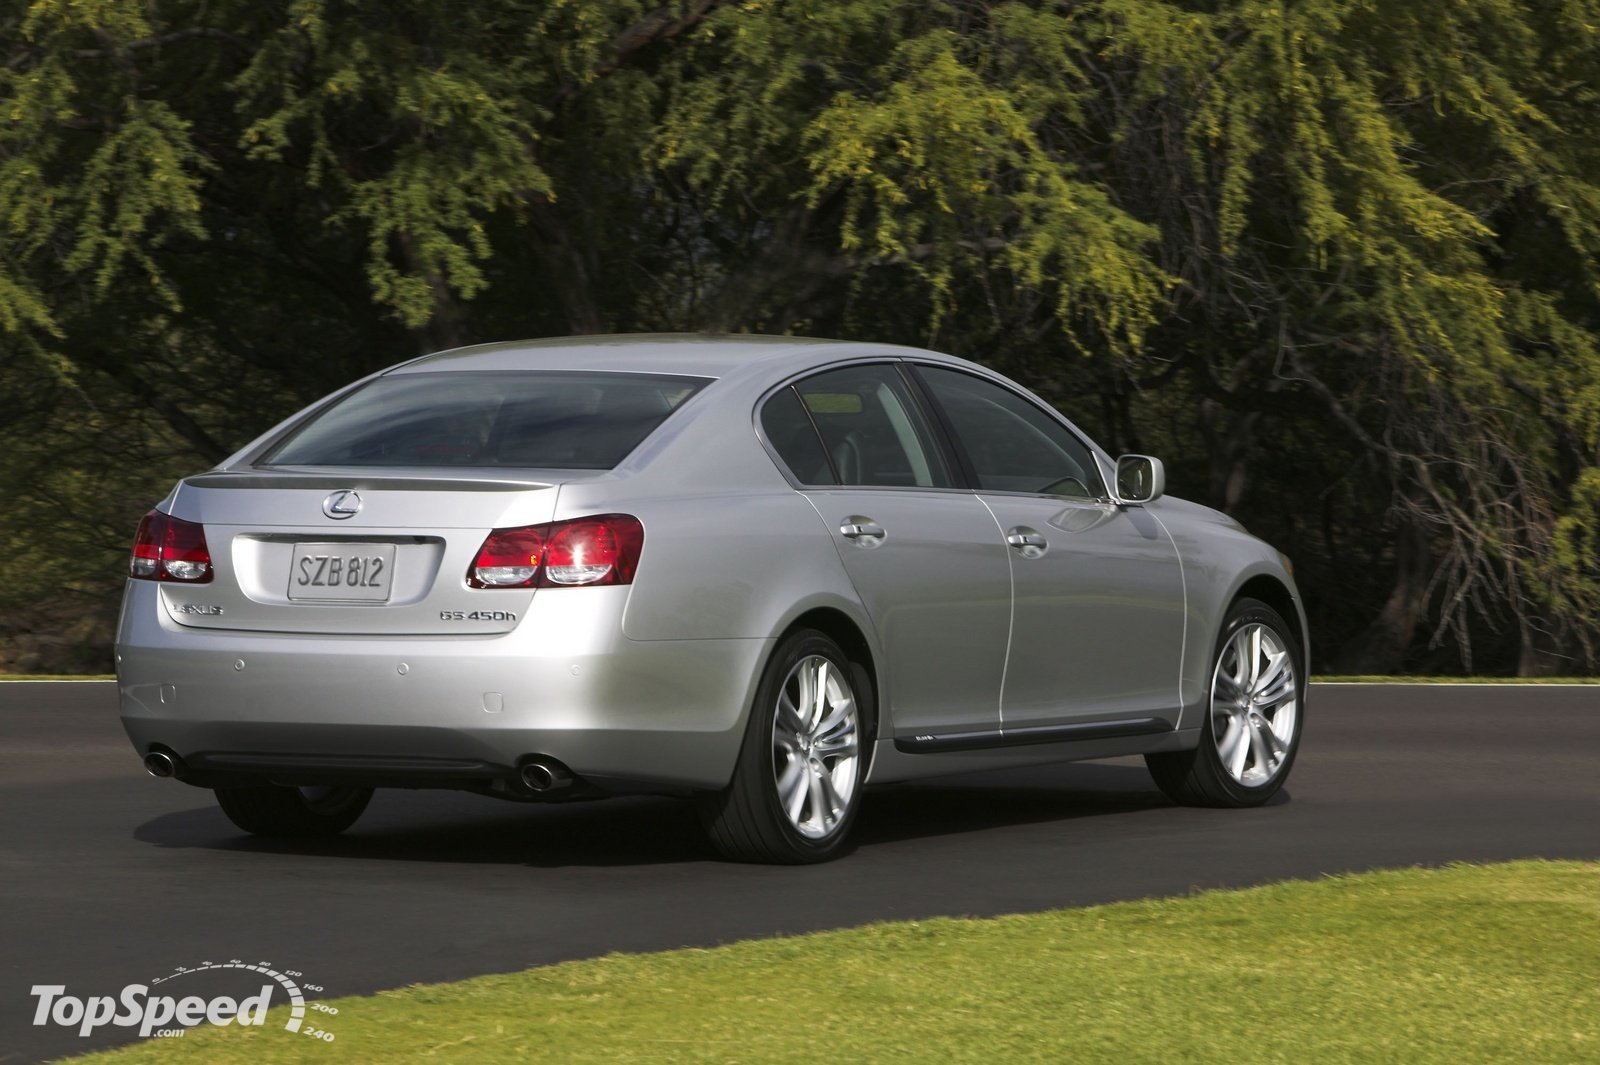 2007 lexus gs 450h picture 94548 car review top speed. Black Bedroom Furniture Sets. Home Design Ideas